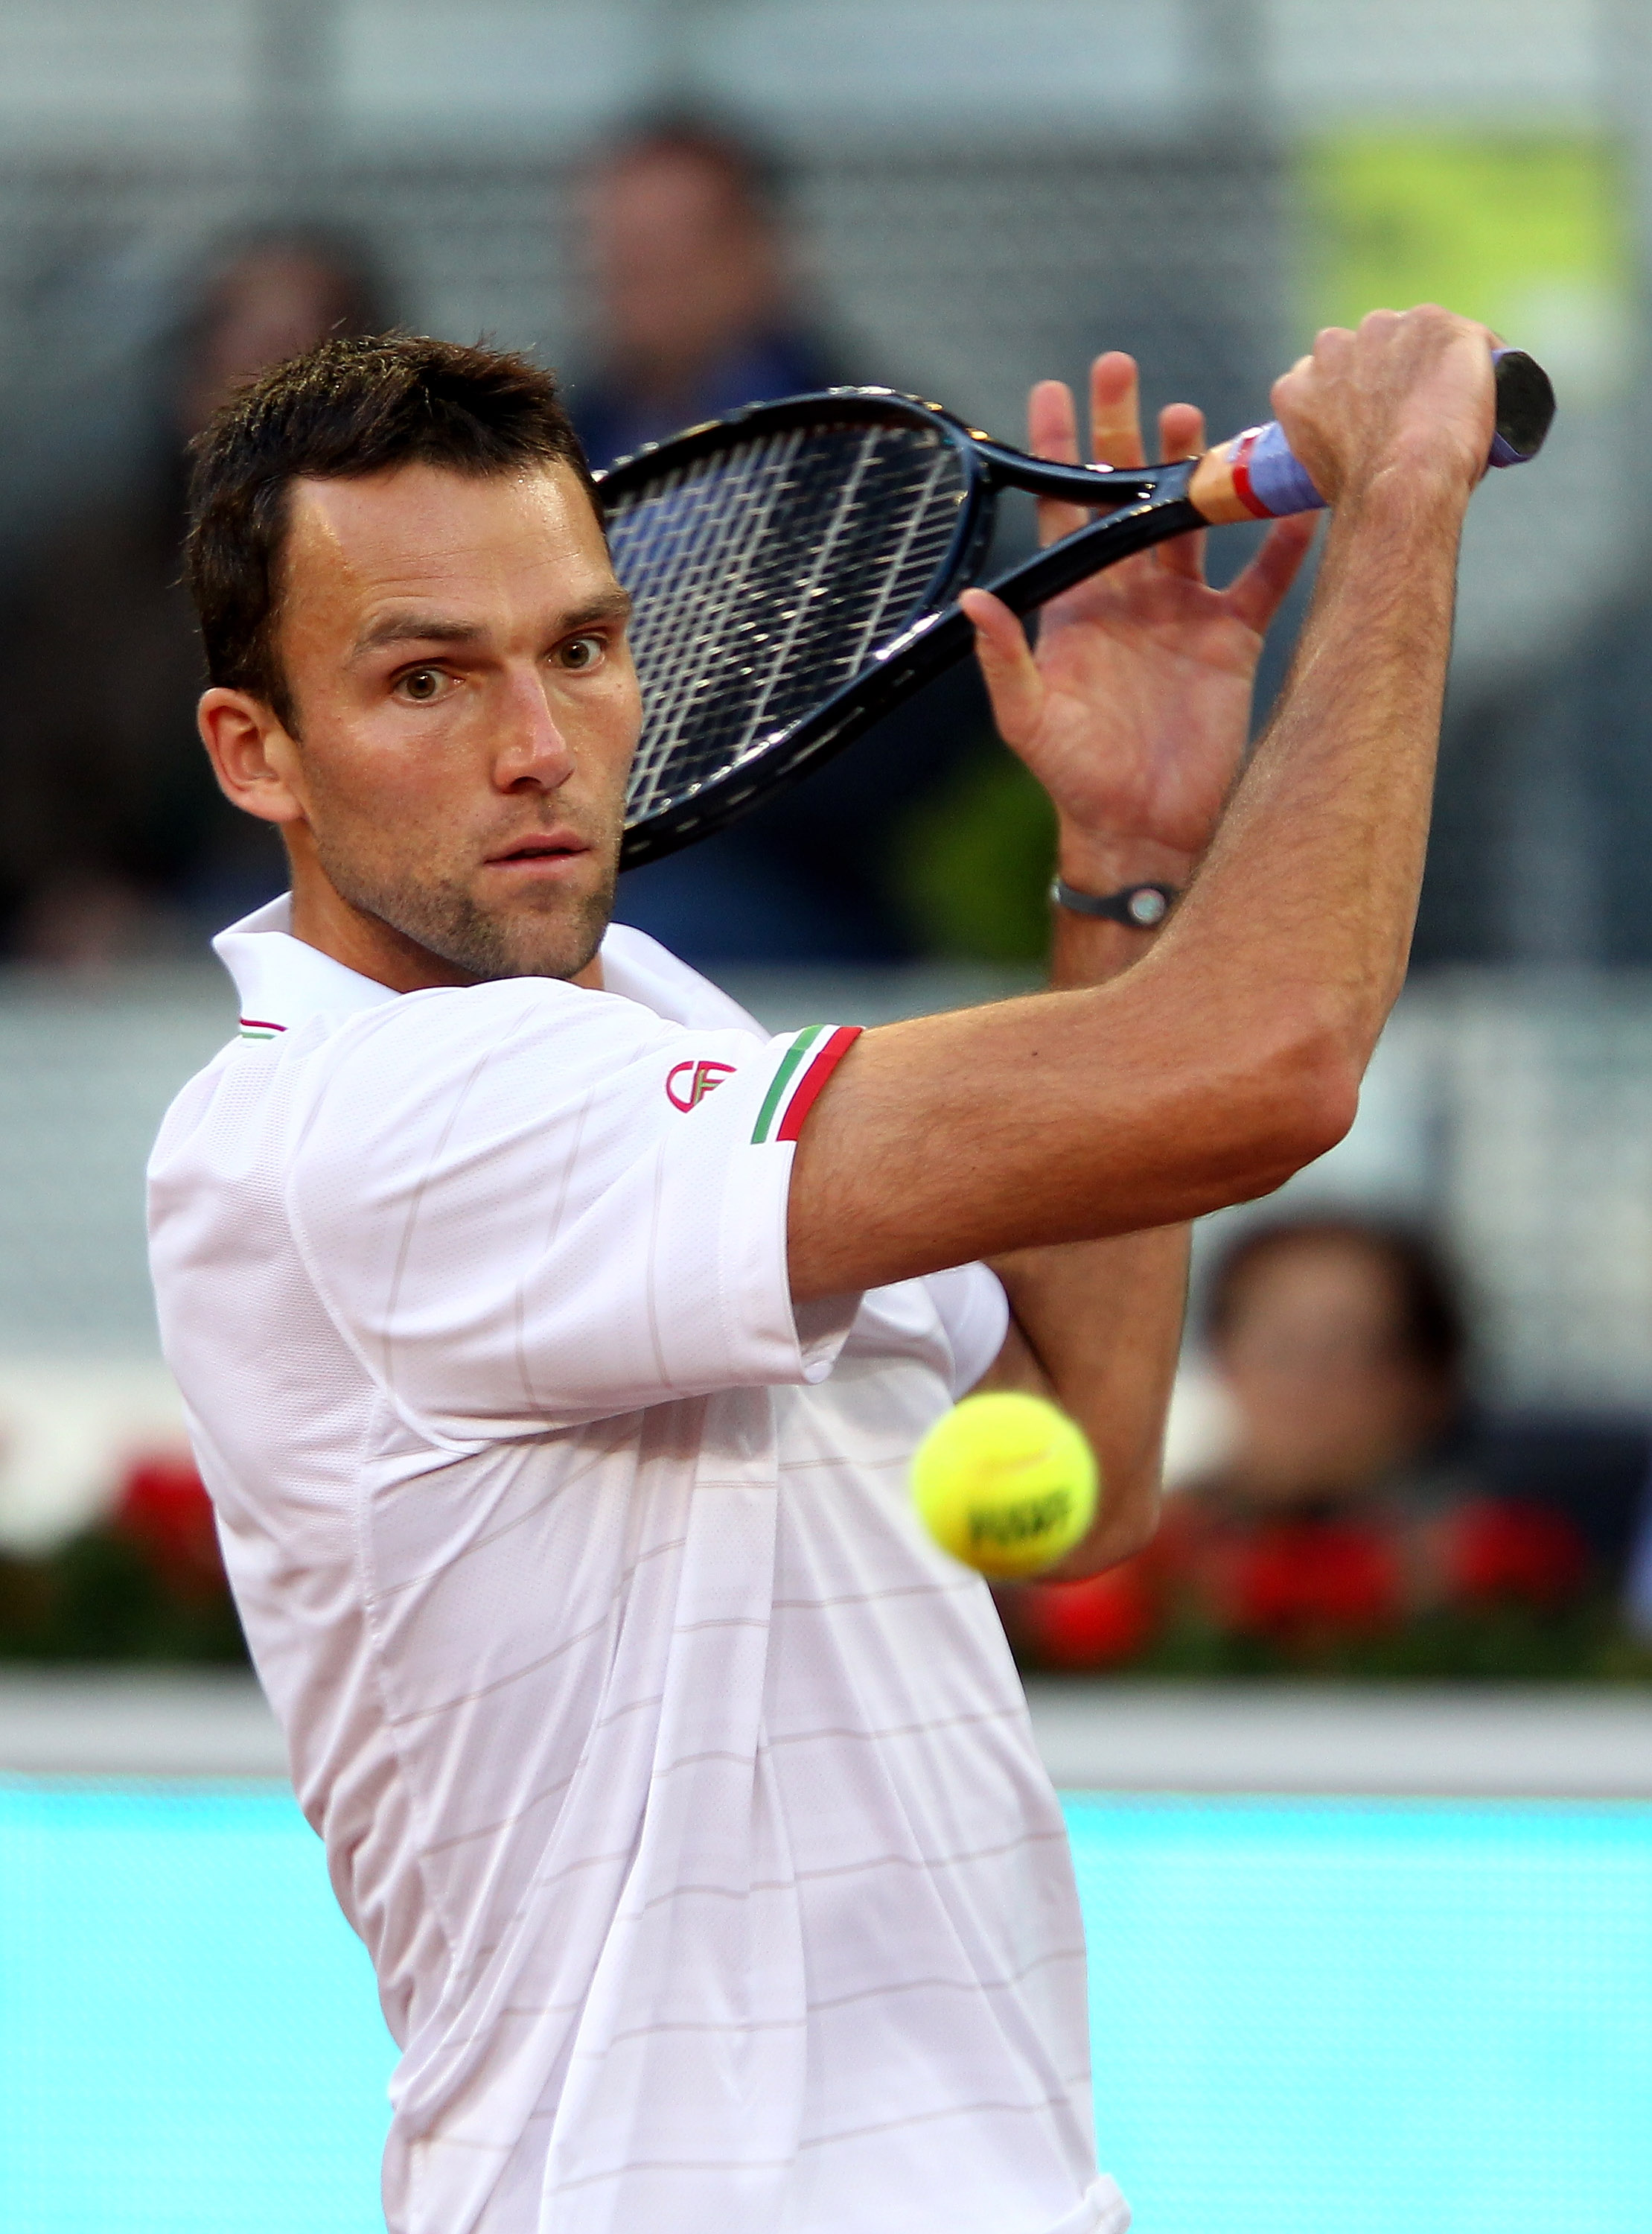 MADRID, SPAIN - MAY 11:  Ivo Karlovic of Croatia  plays a backhand against  Fernando Verdasco of Spain in their second round match during the Mutua Madrilena Madrid Open tennis tournament at the Caja Magica on on May 11, 2010 in Madrid, Spain.  (Photo by